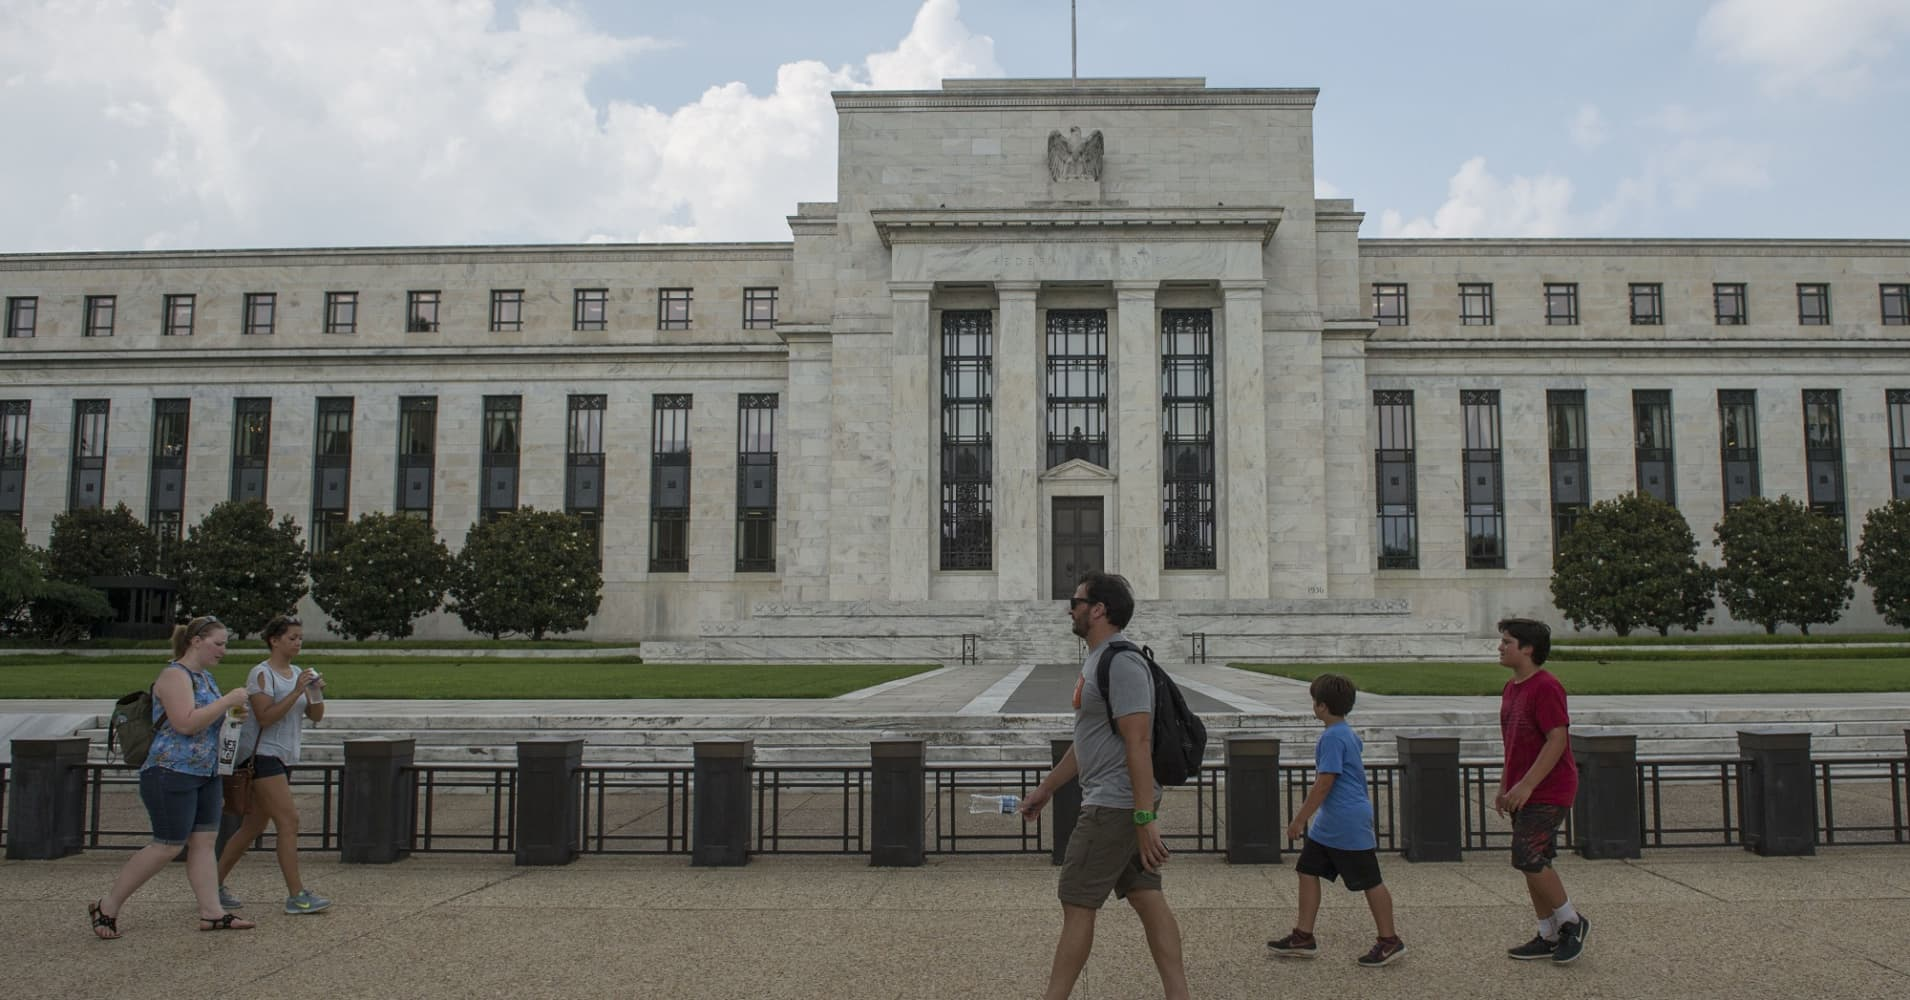 Tourists walk in front of the Federal Reserve in Washington, D.C.